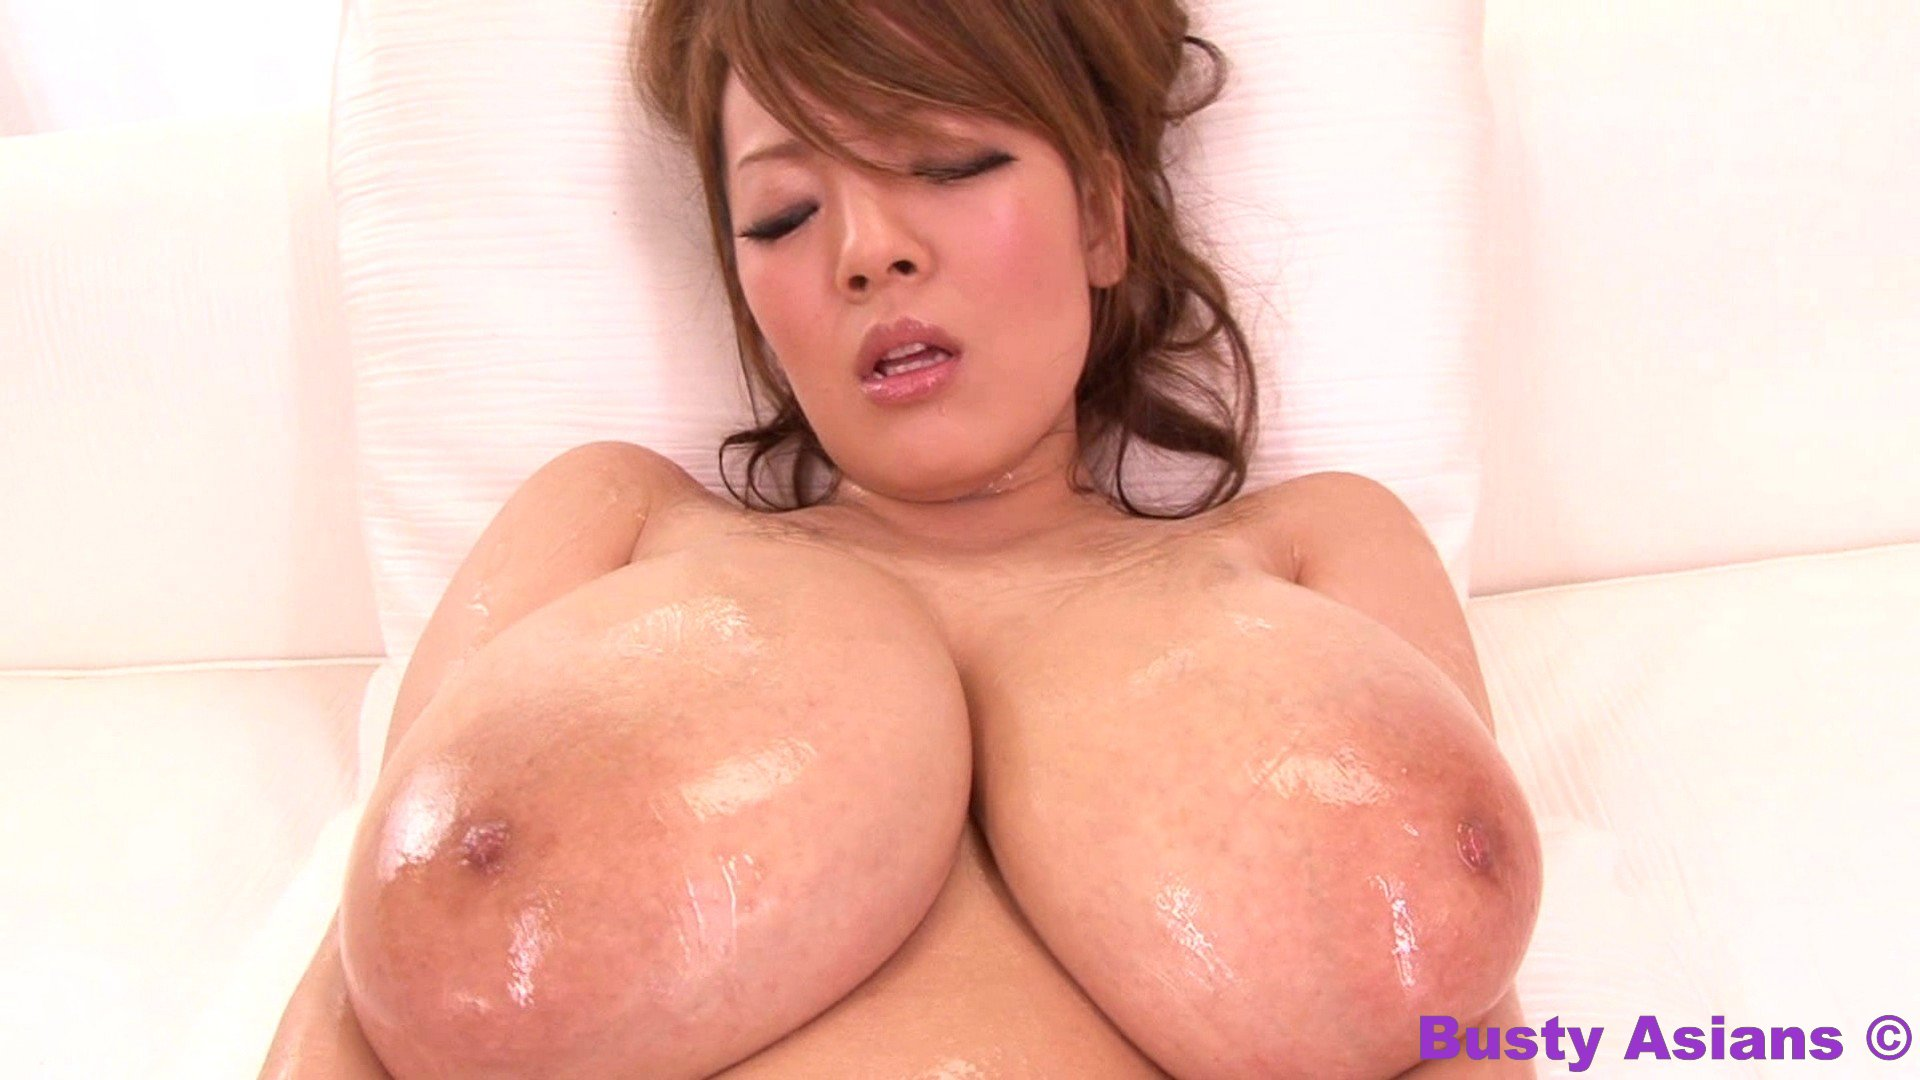 Busty asians lusoporno vids